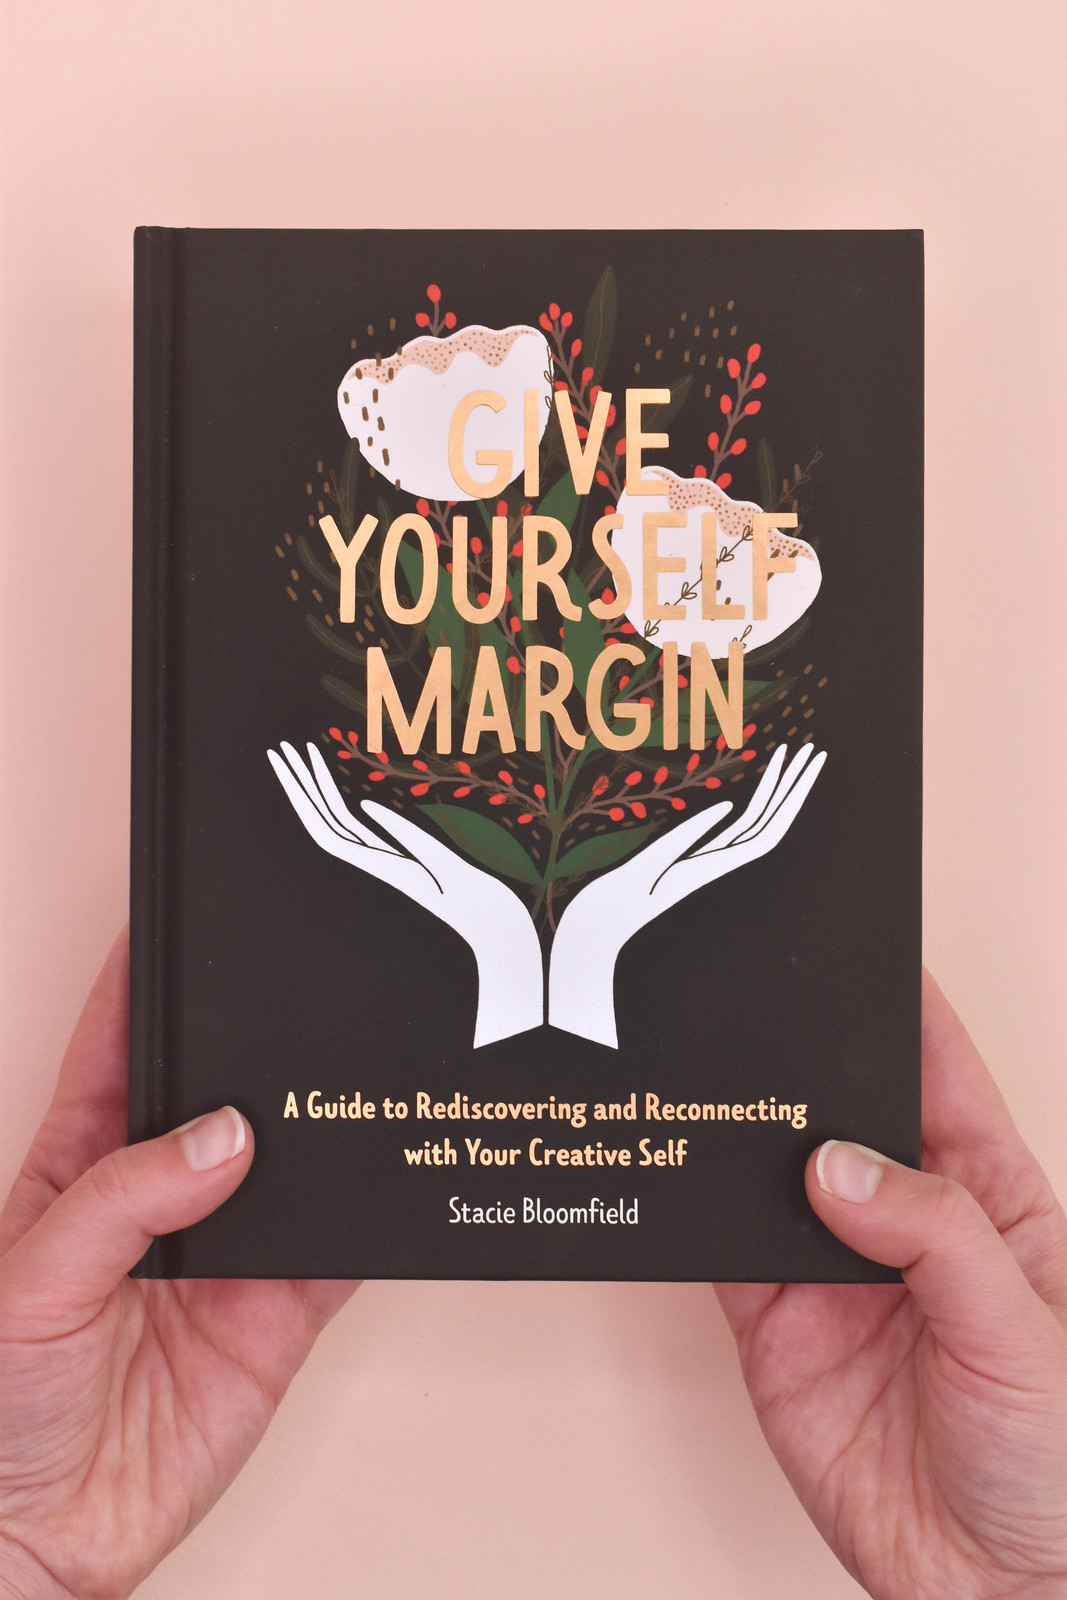 Give Yourself Margin by Stacie Bloomfield